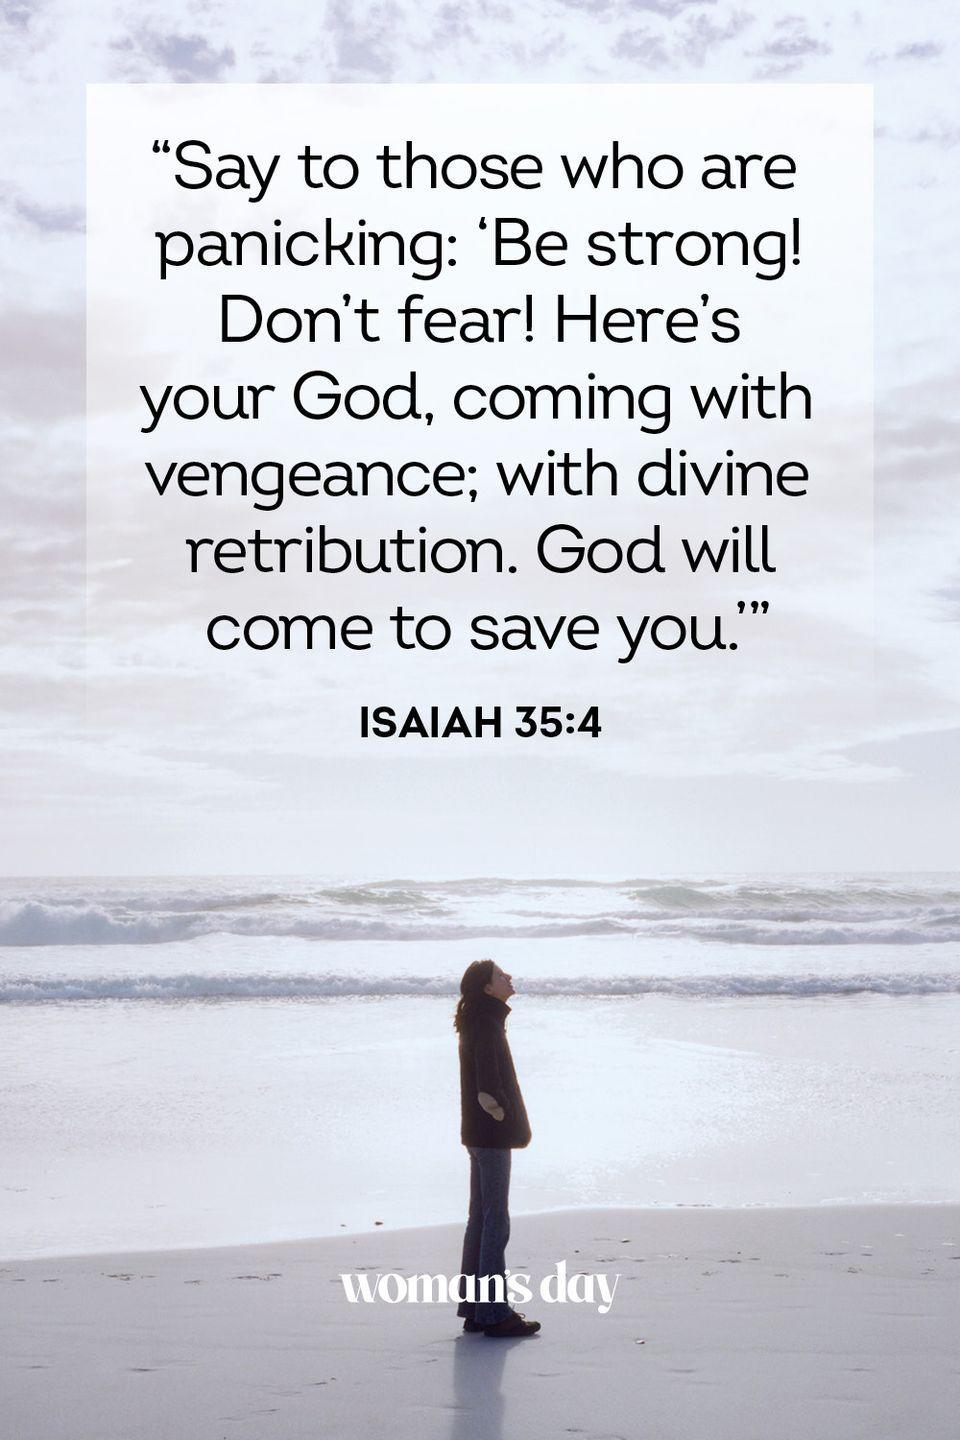 """<p>""""Say to those who are panicking: 'Be strong! Don't fear! Here's your God, coming with vengeance; with divine retribution. God will come to save you.'"""" </p><p><strong>The Good News: </strong>God will show up when you need him. He will deliver you from your worries.</p>"""